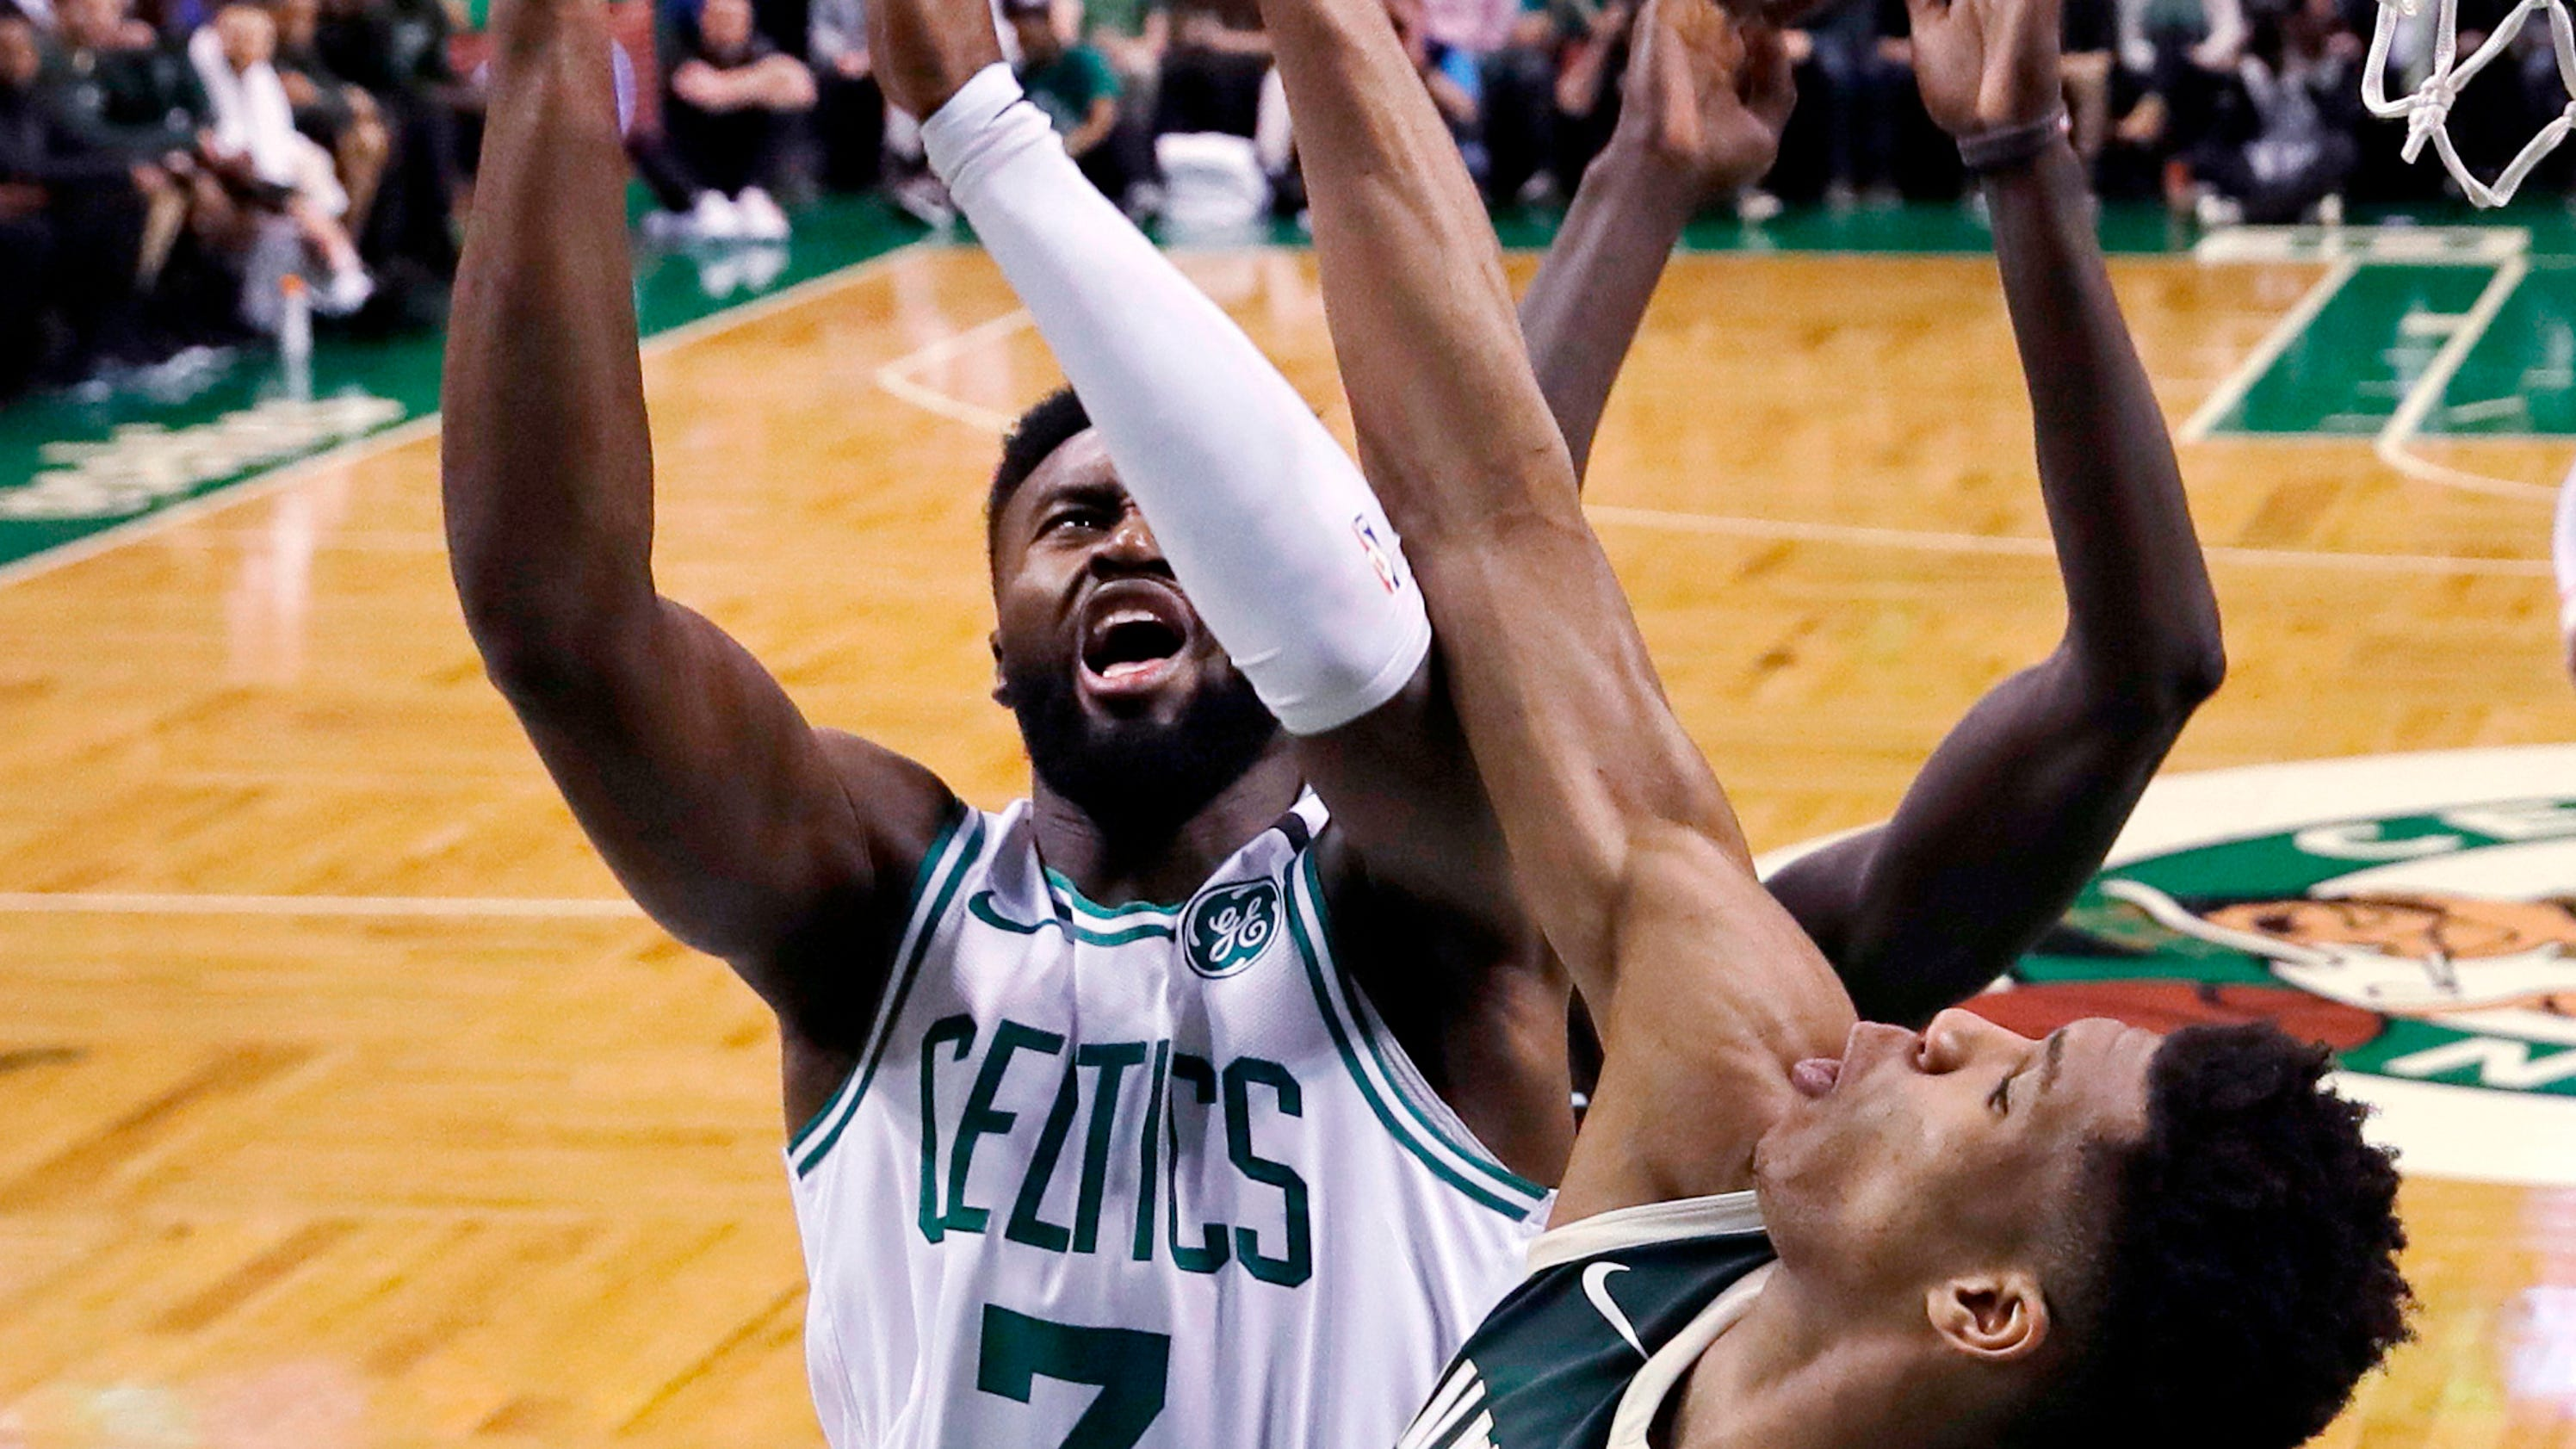 celtics vs 76ers - photo #14